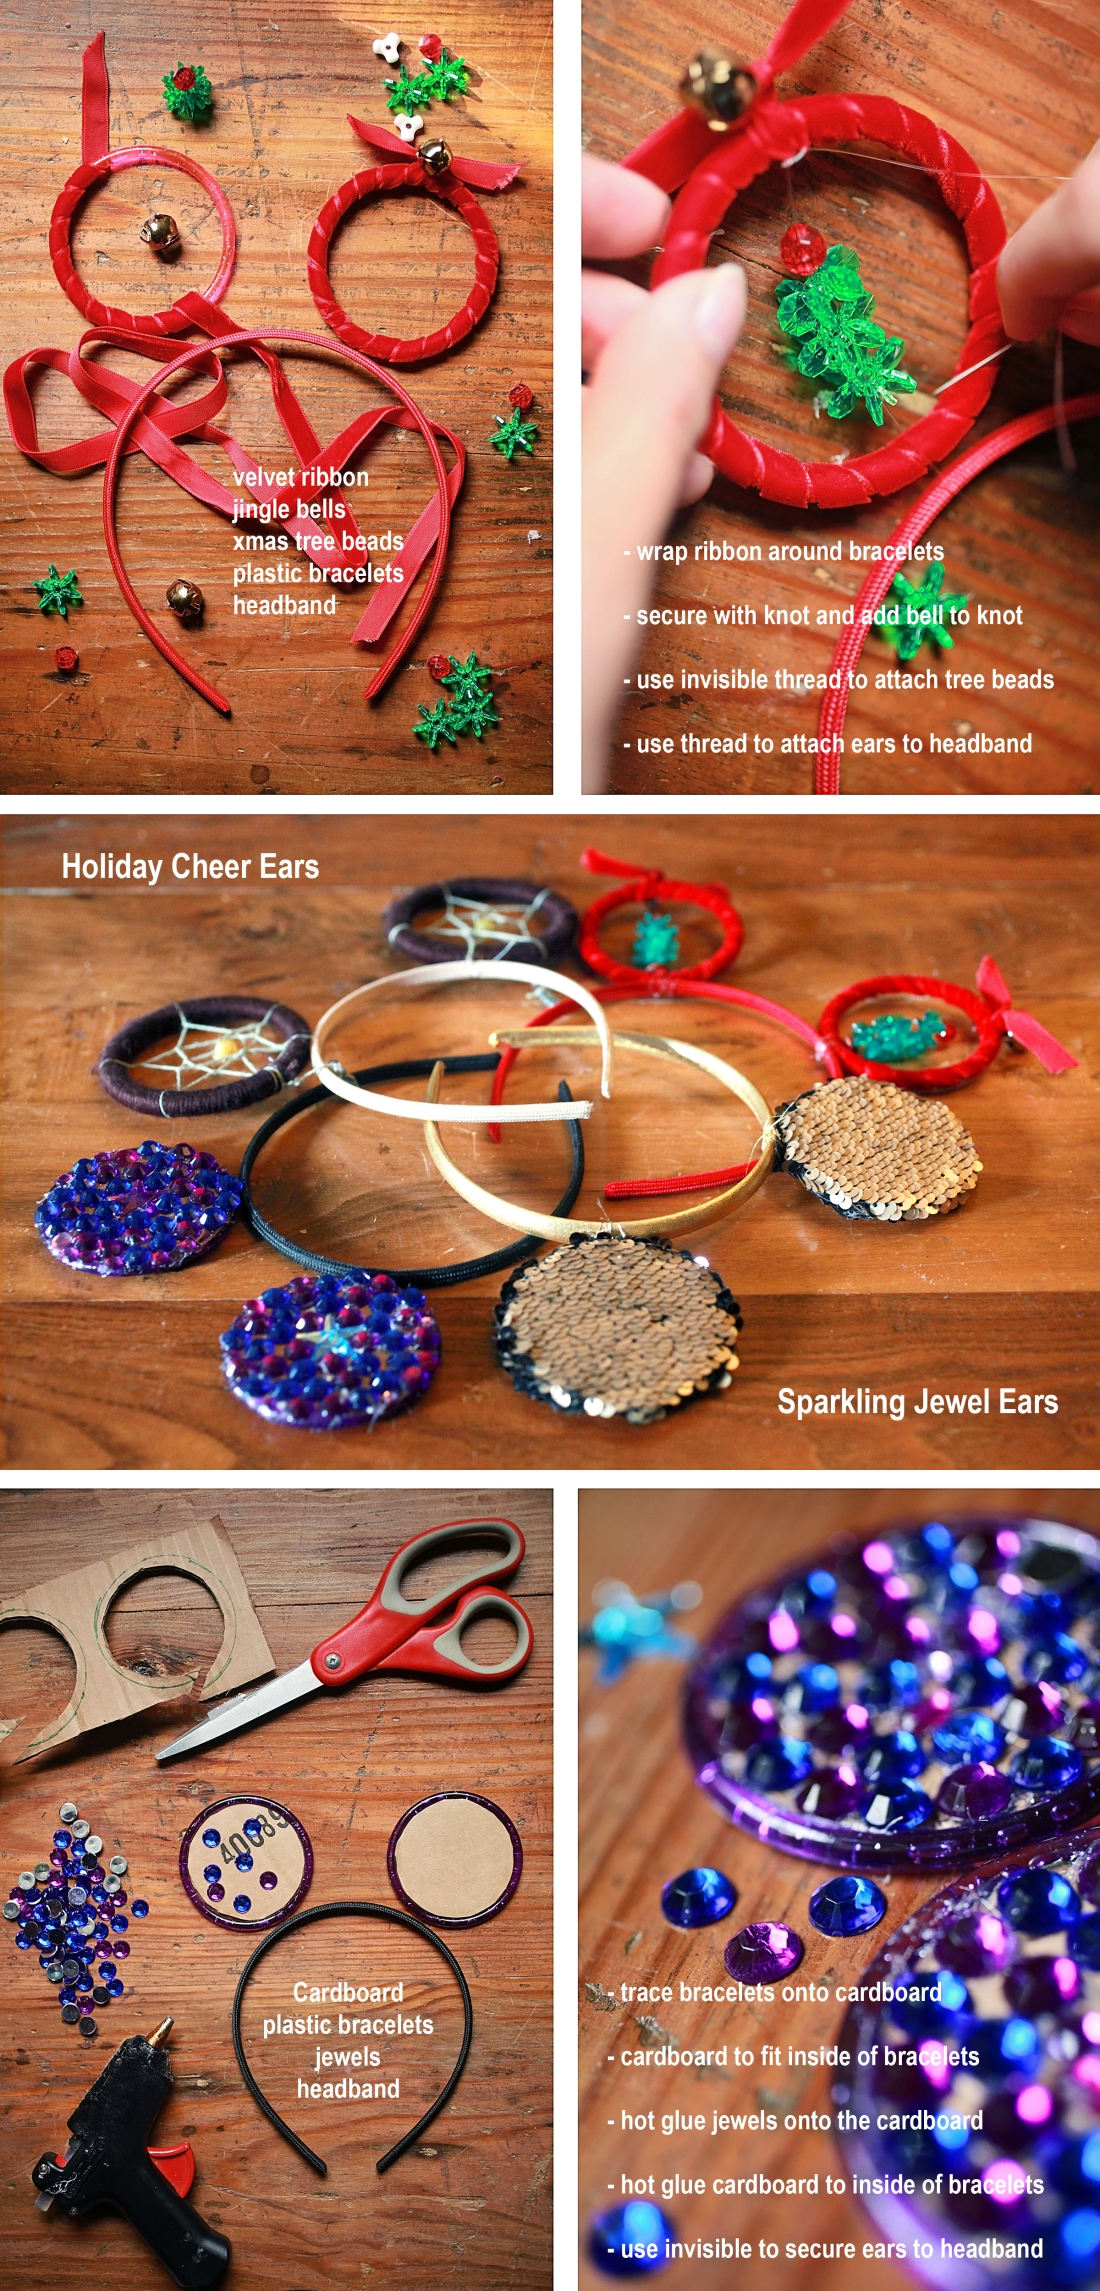 Diy Mickey Mouse Ears For Make A Wish S Share Your Ears